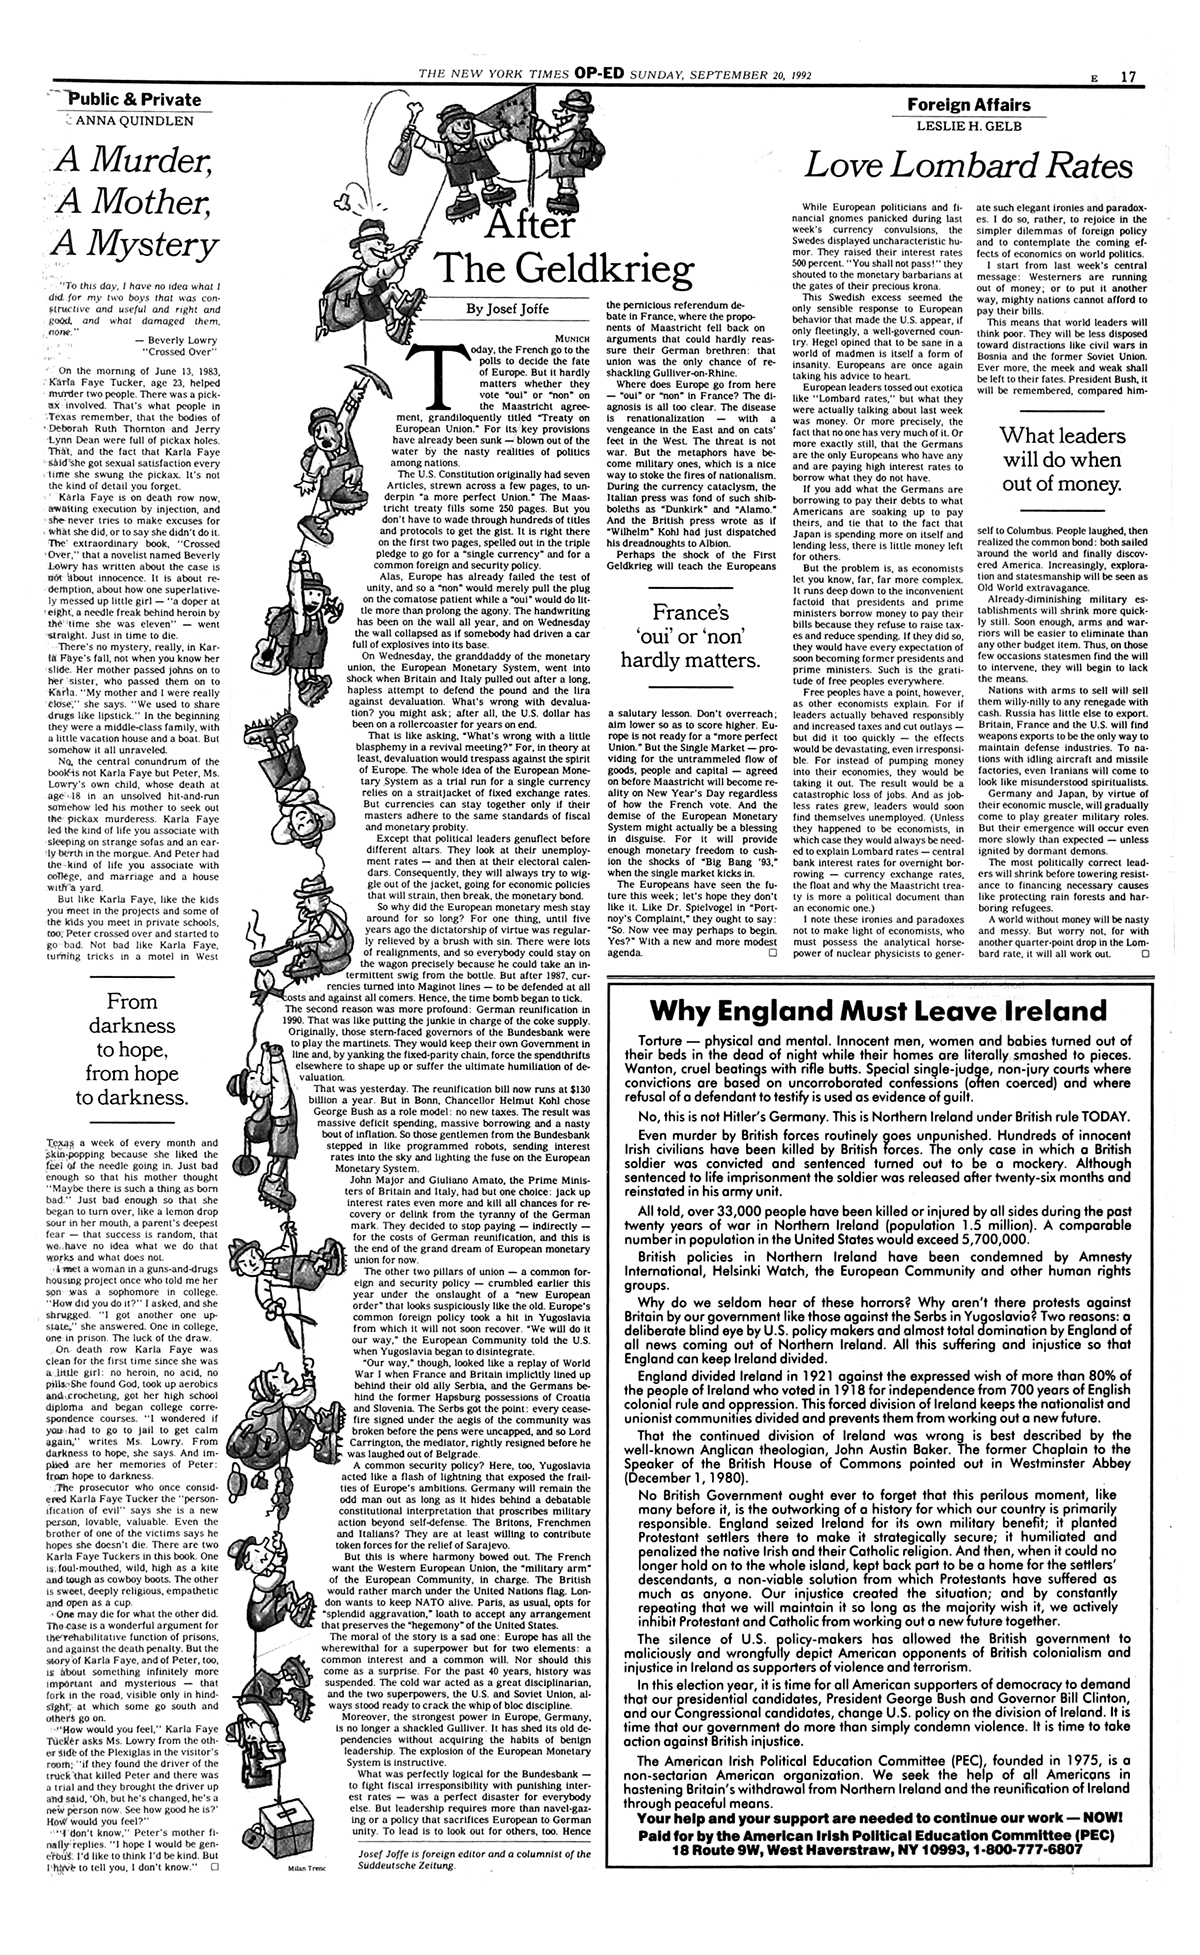 NYTimes New York Times op-ed